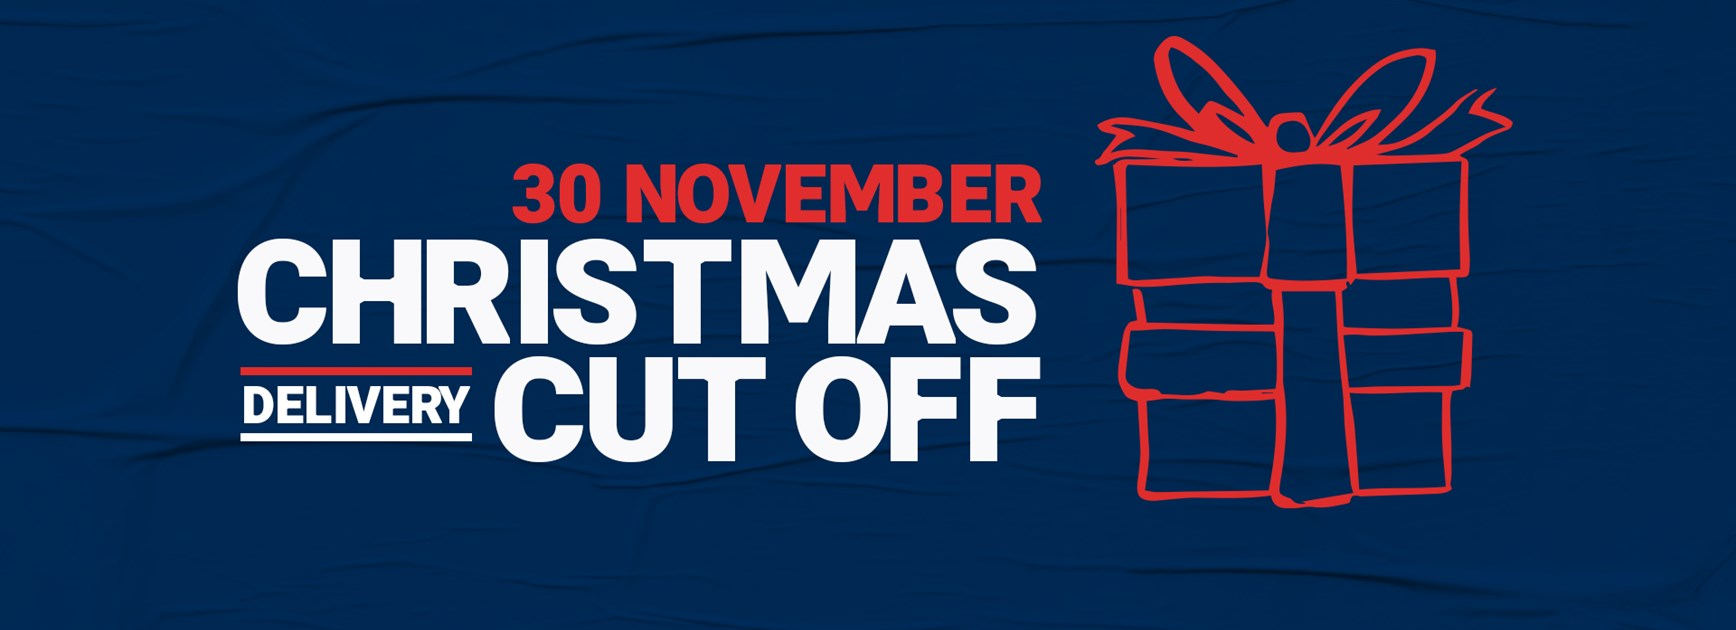 Christmas Cut Off On Friday!